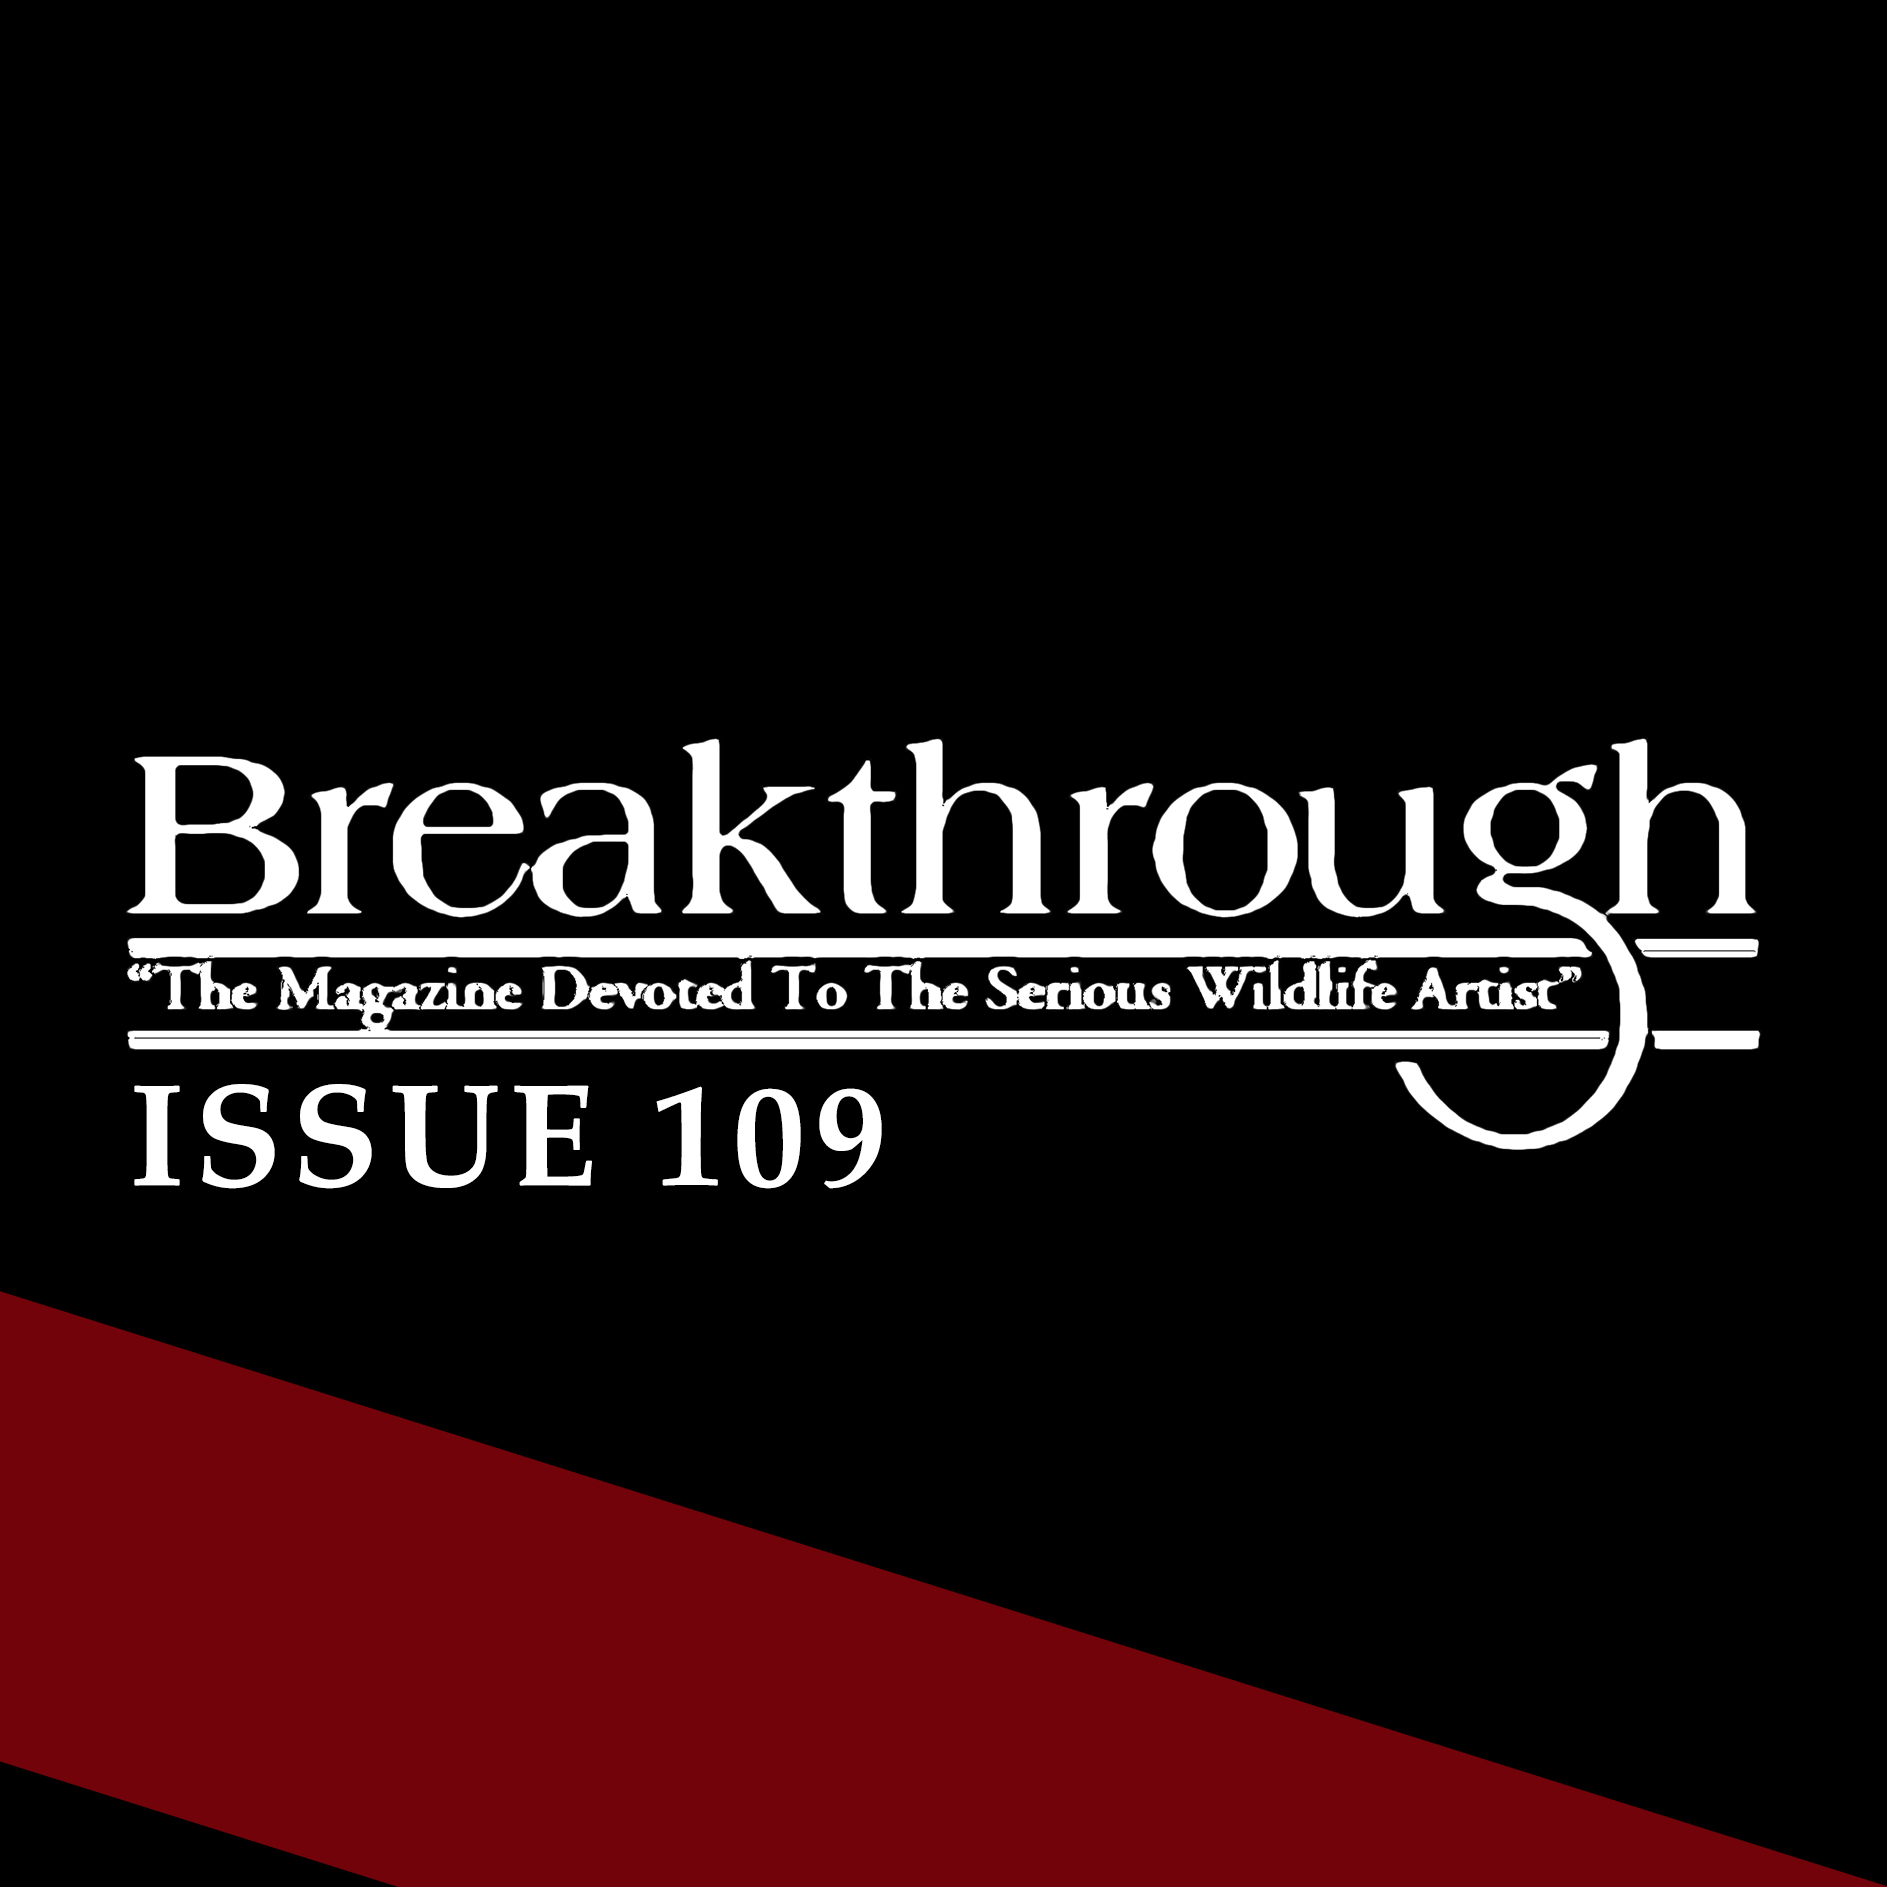 Breakthrough Magazine Issue 109.jpg